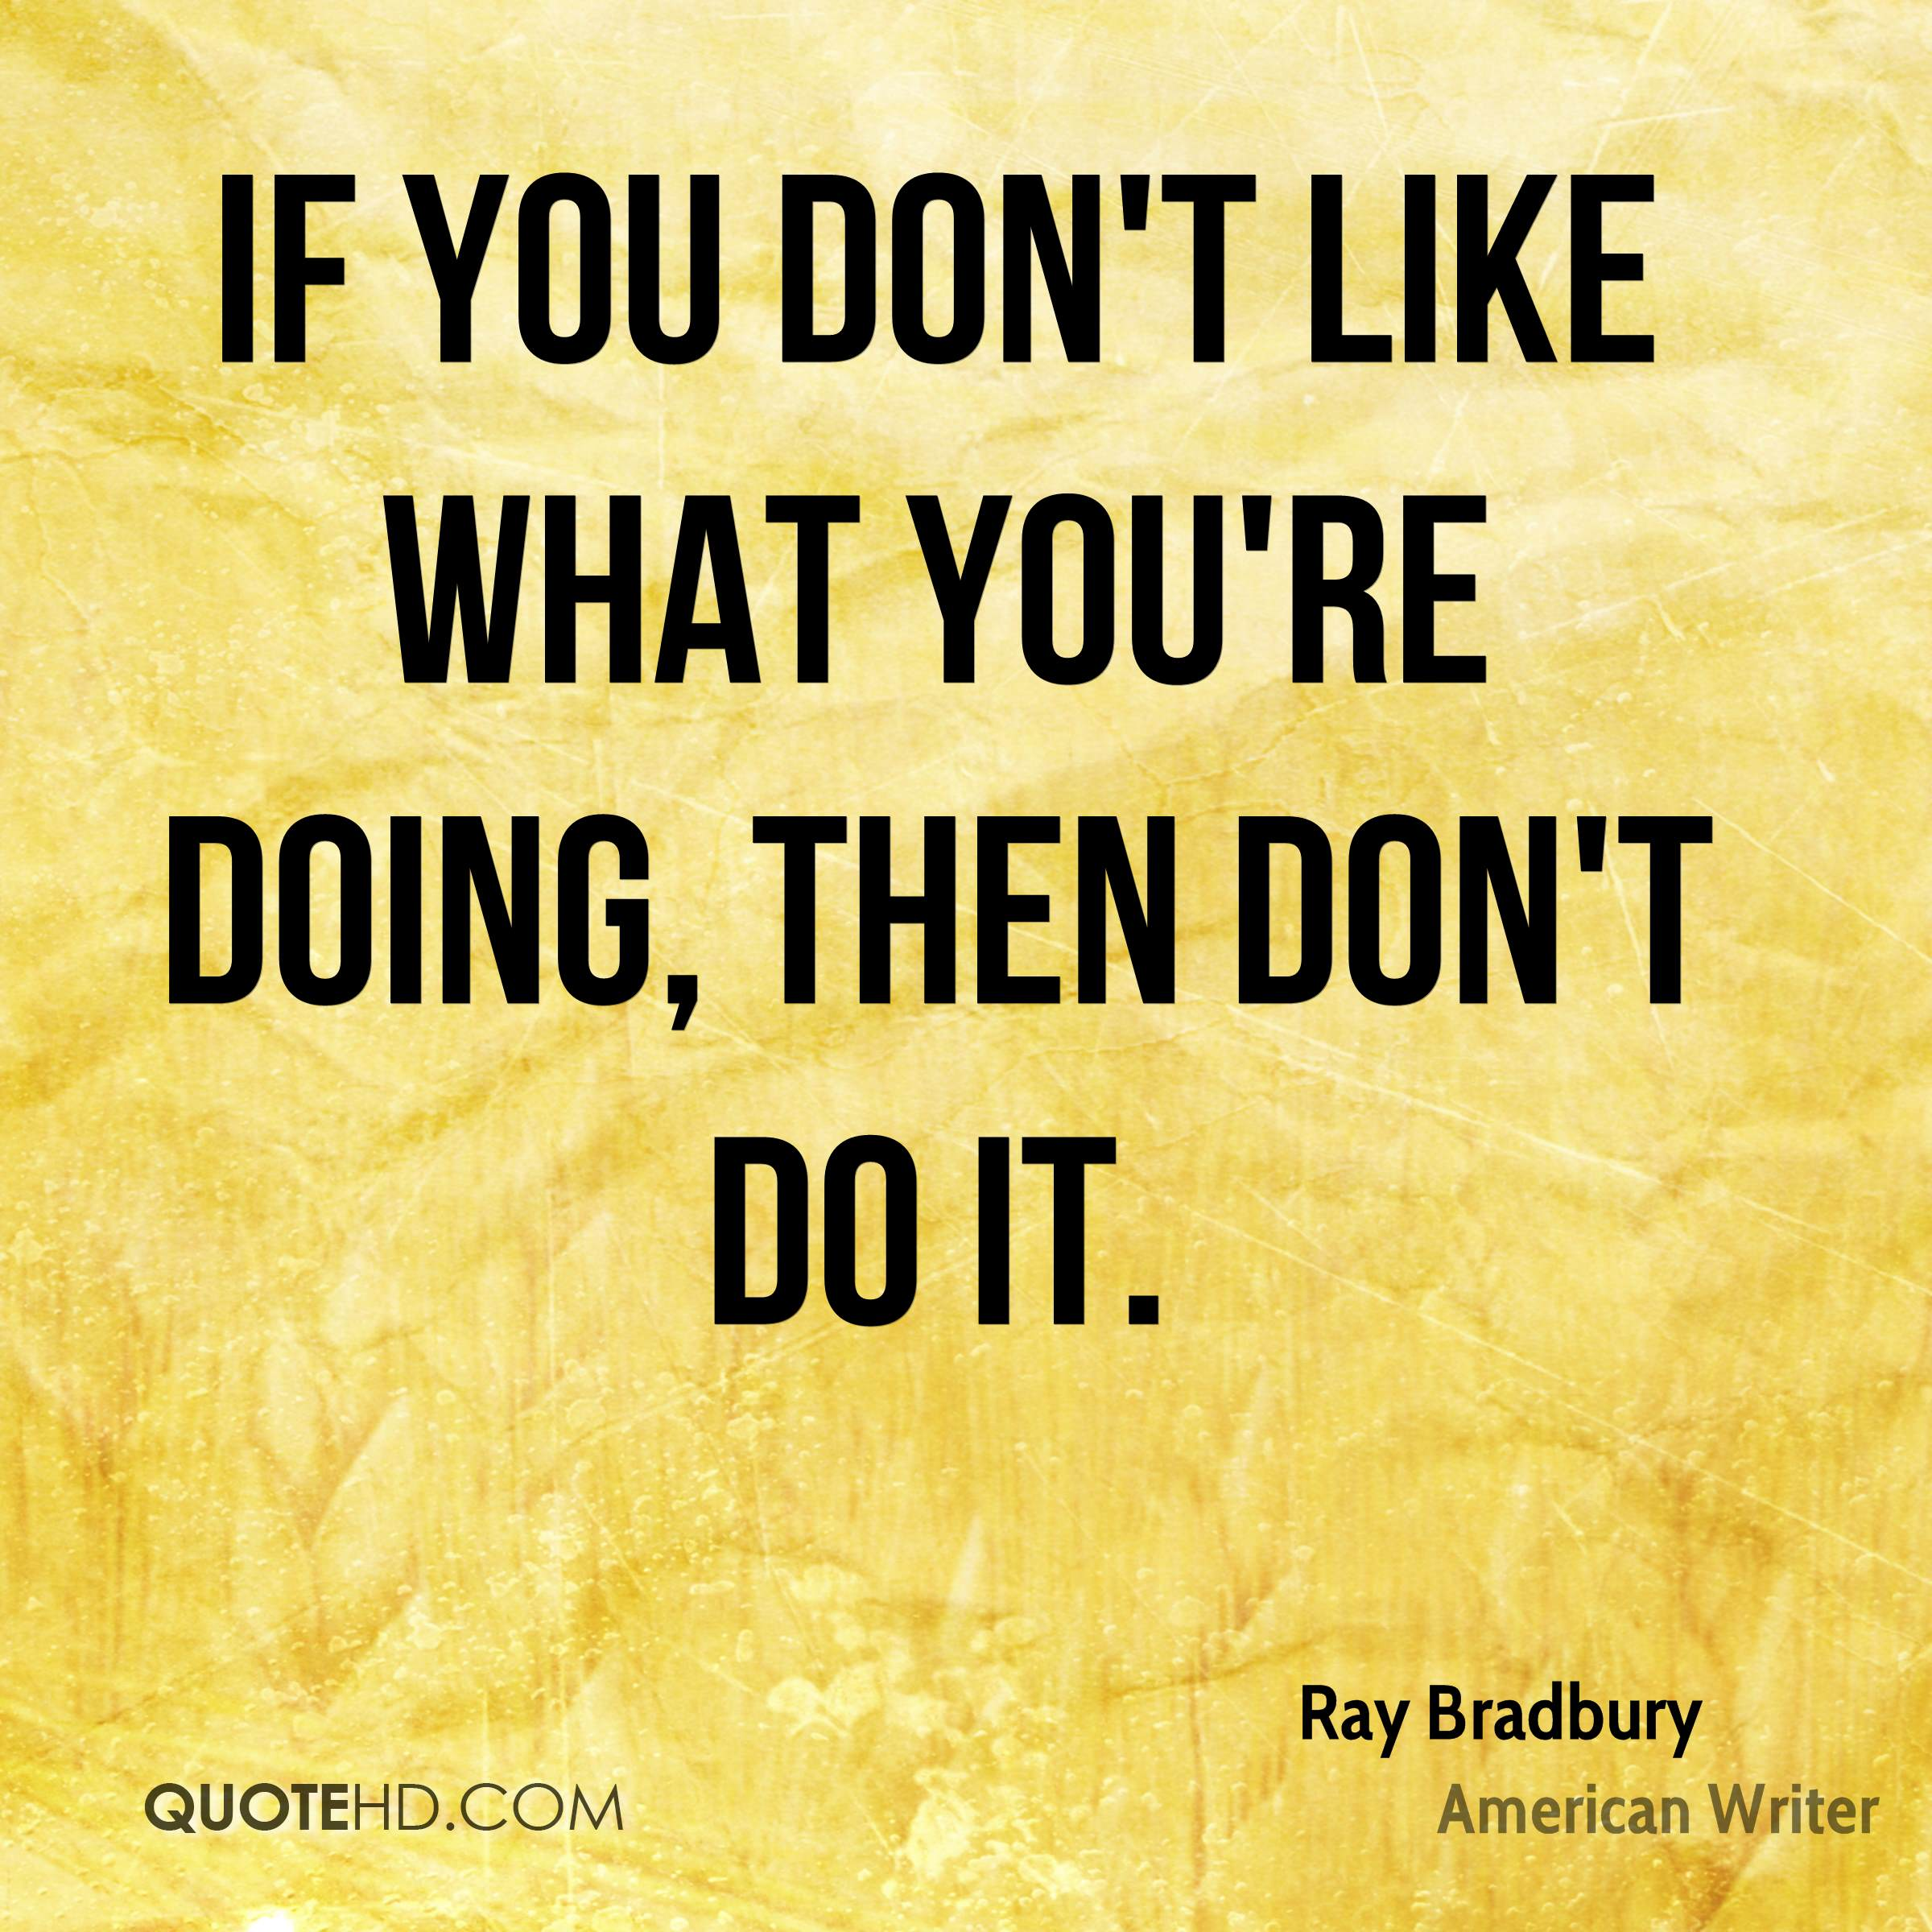 If you don't like what you're doing, then don't do it.